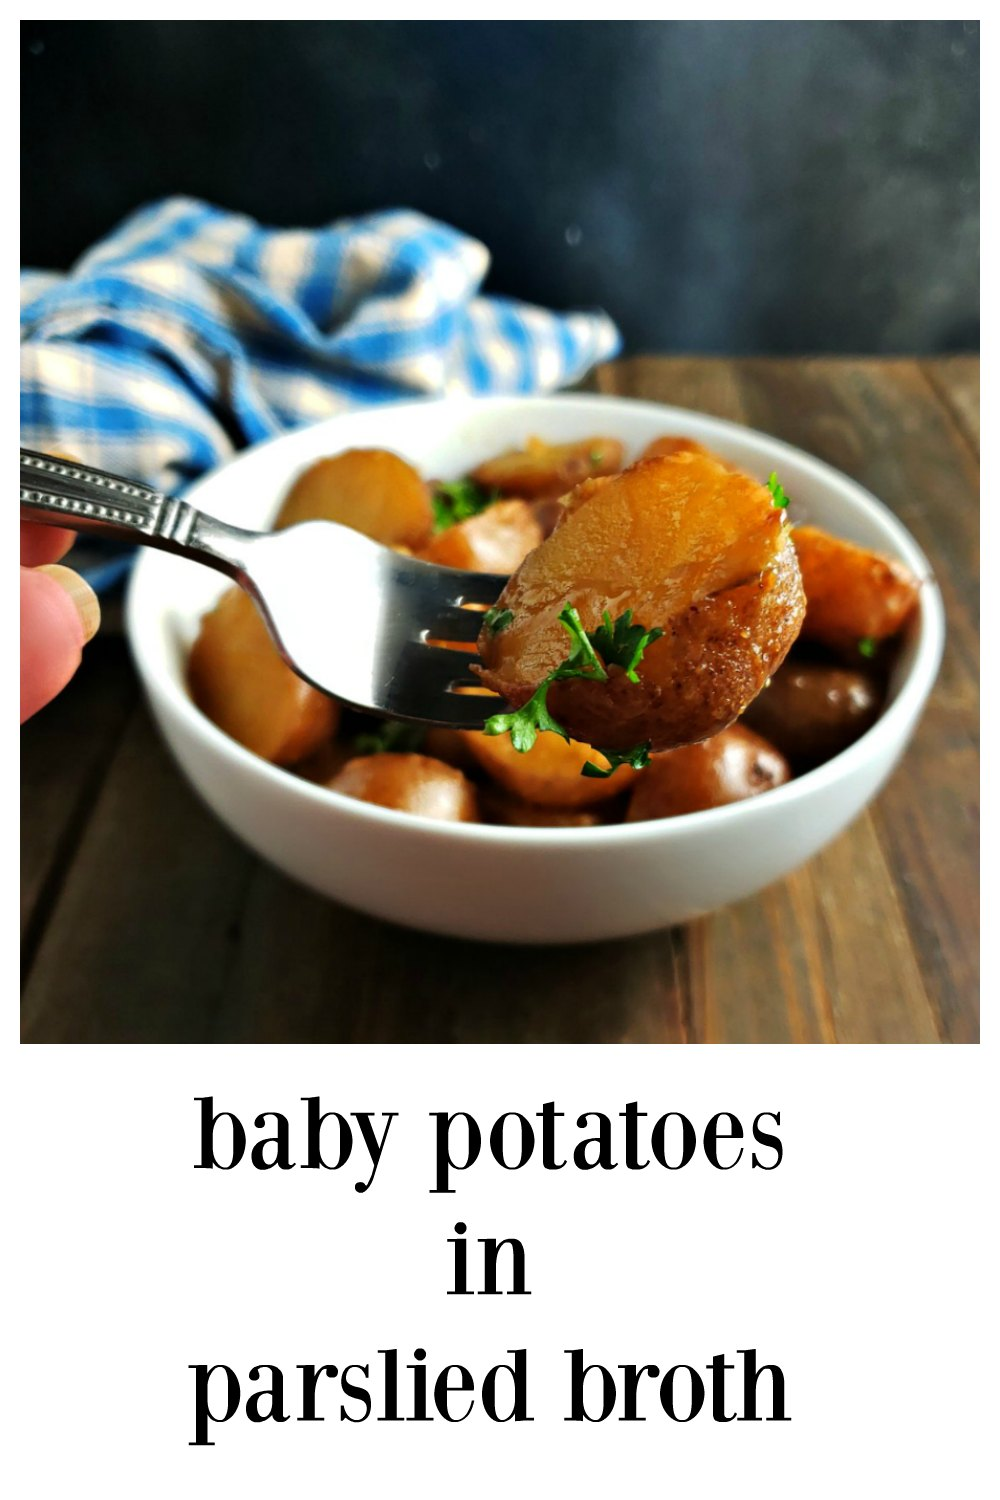 Baby Potatoes in Parsley Broth. So simple & so delish! By the time the potatoes are beautifully tender & creamy, the broth reduces to a gorgeous glaze. #BabyPotatoesParsleyBroth #GlazedBabyPotatoes #BabyPotatoes #NewPotatoes #GlazedNewPotatoes #NewPotatoesBroth